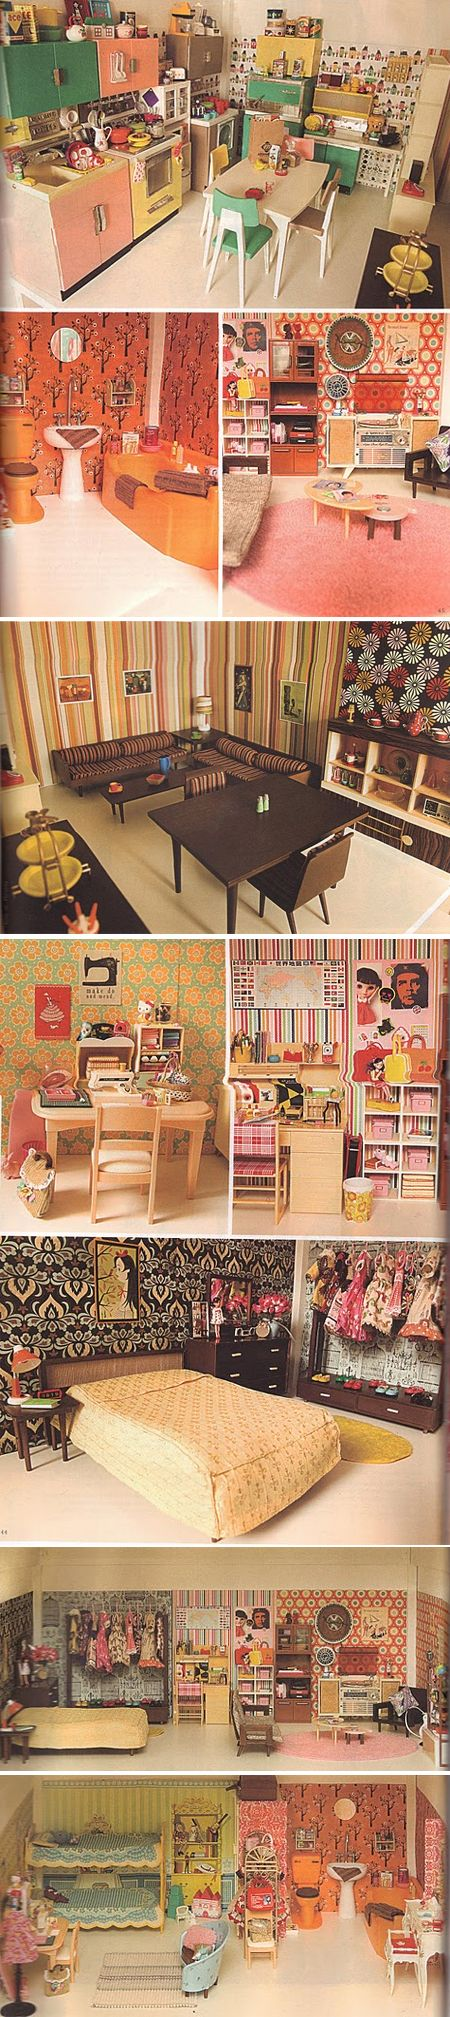 Amazing retro Sindy dream house, love all the colours going on here!